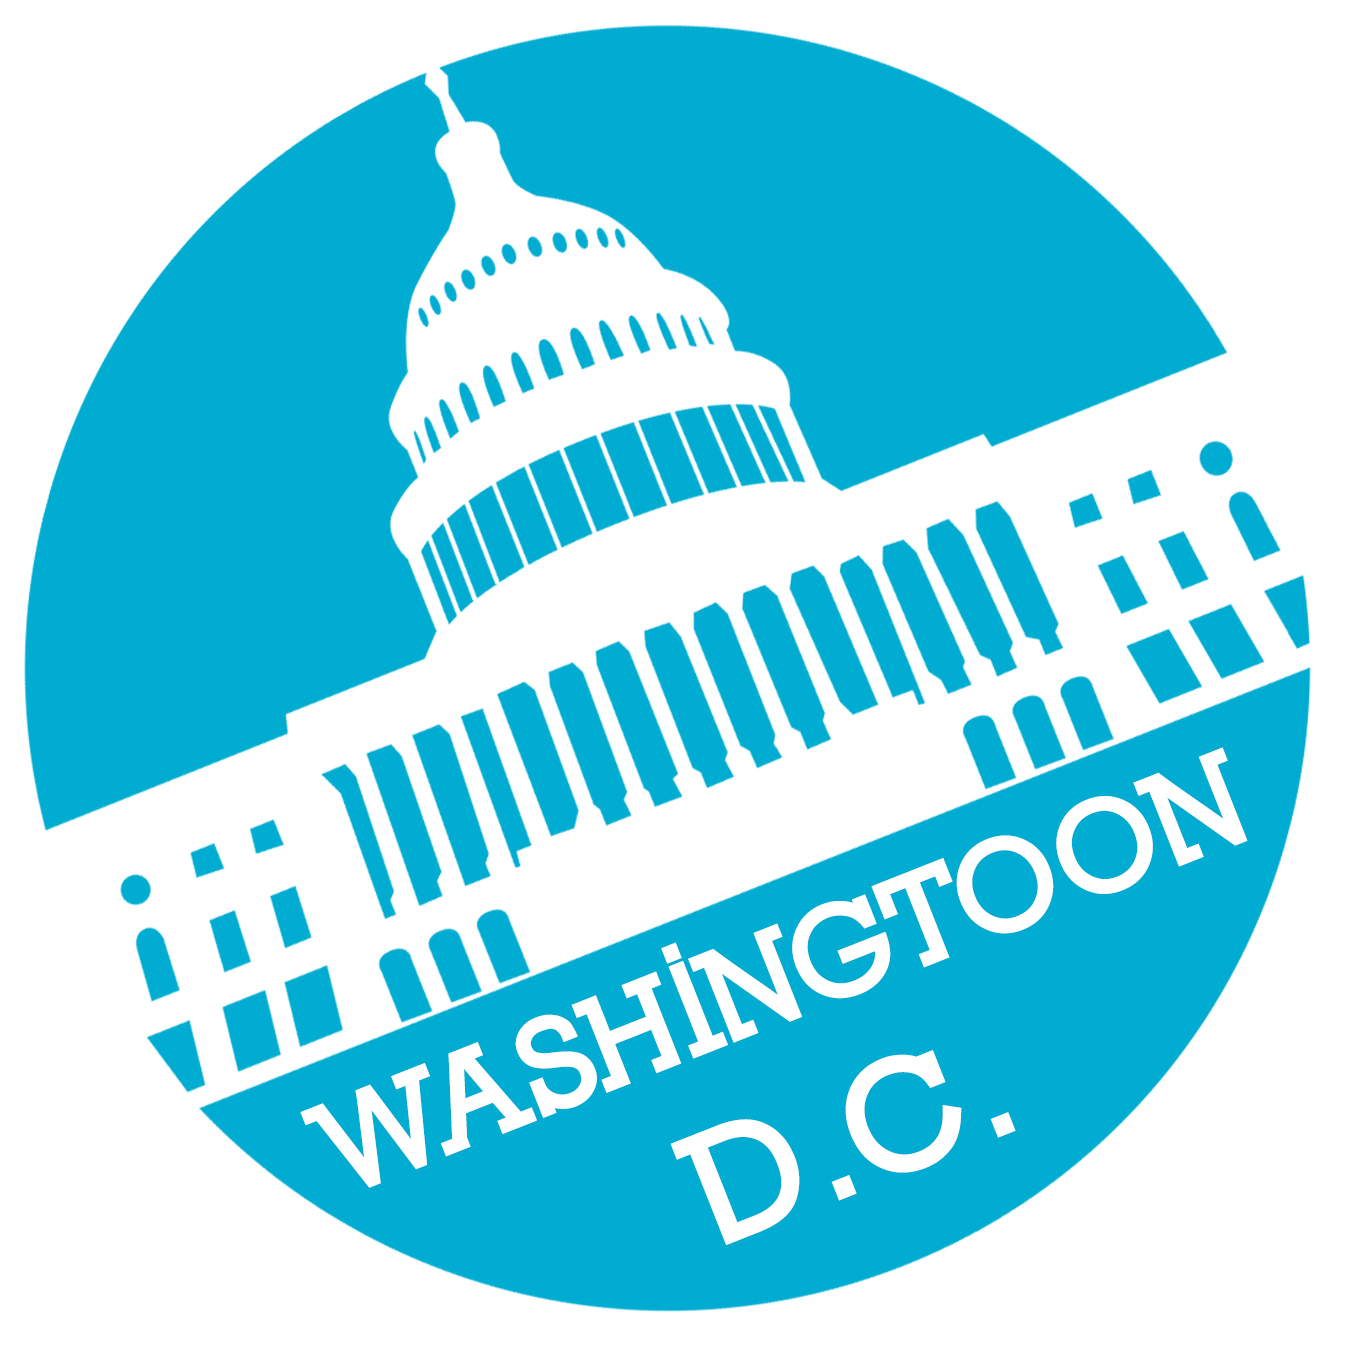 Washingtoon D.C.